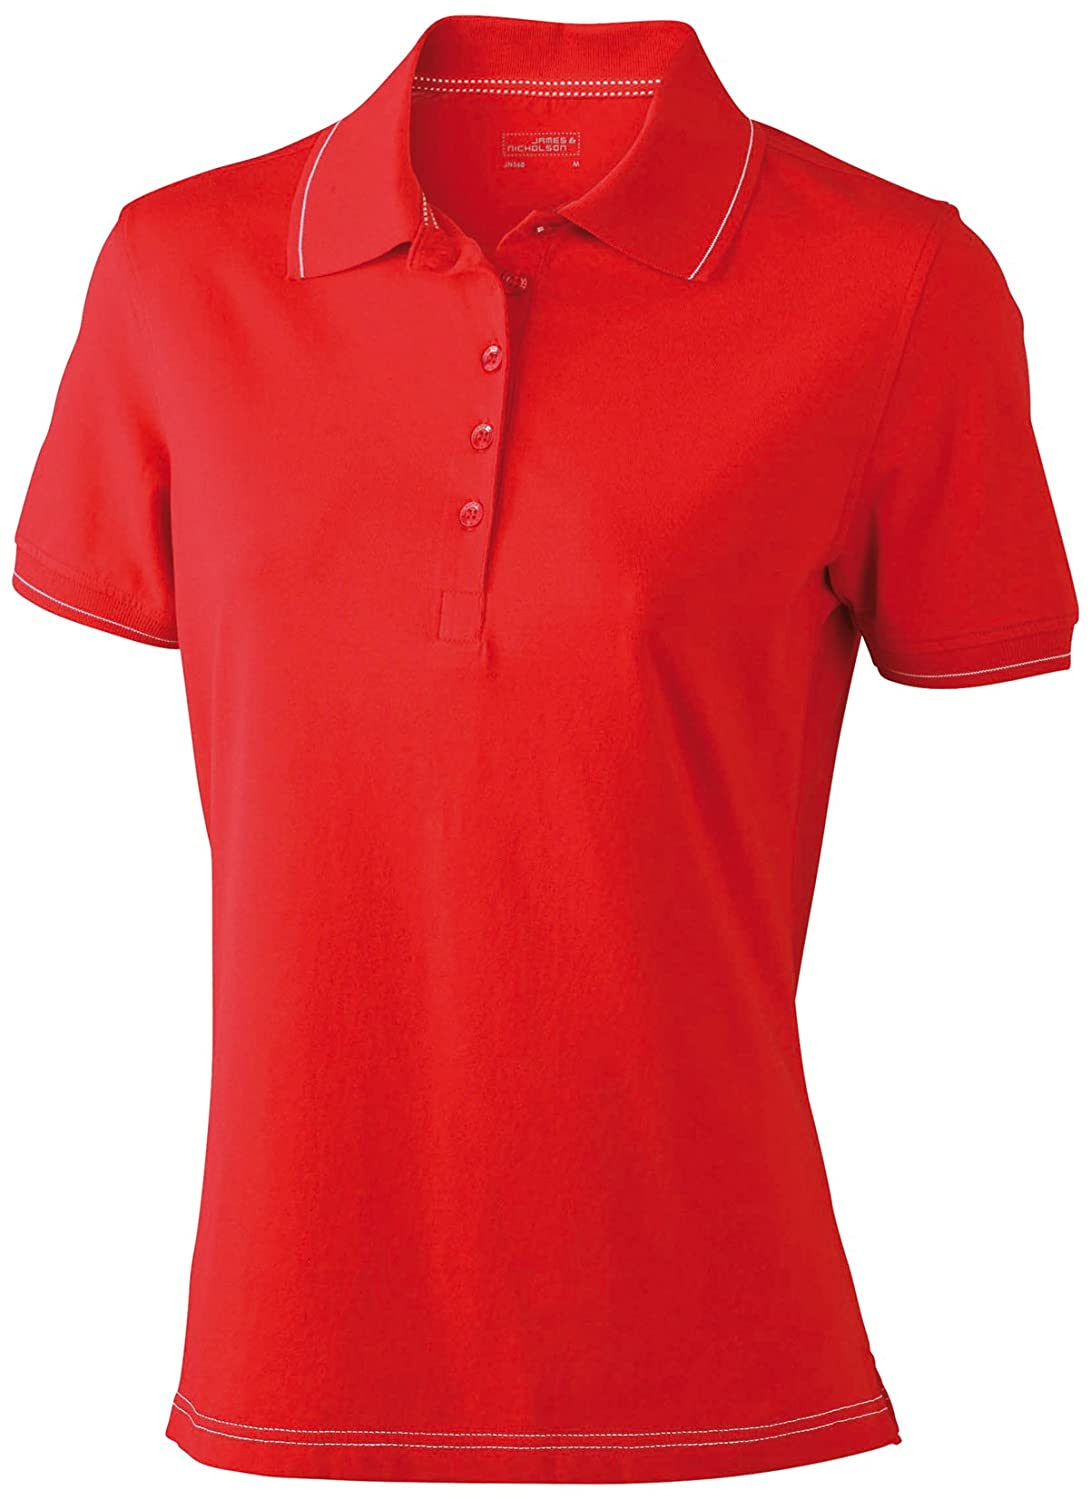 James & Nicholson Funktionspolo Elastic - Polo Mujer, Rojo (red/white), Large (Talla del fabricante: Large) JN568